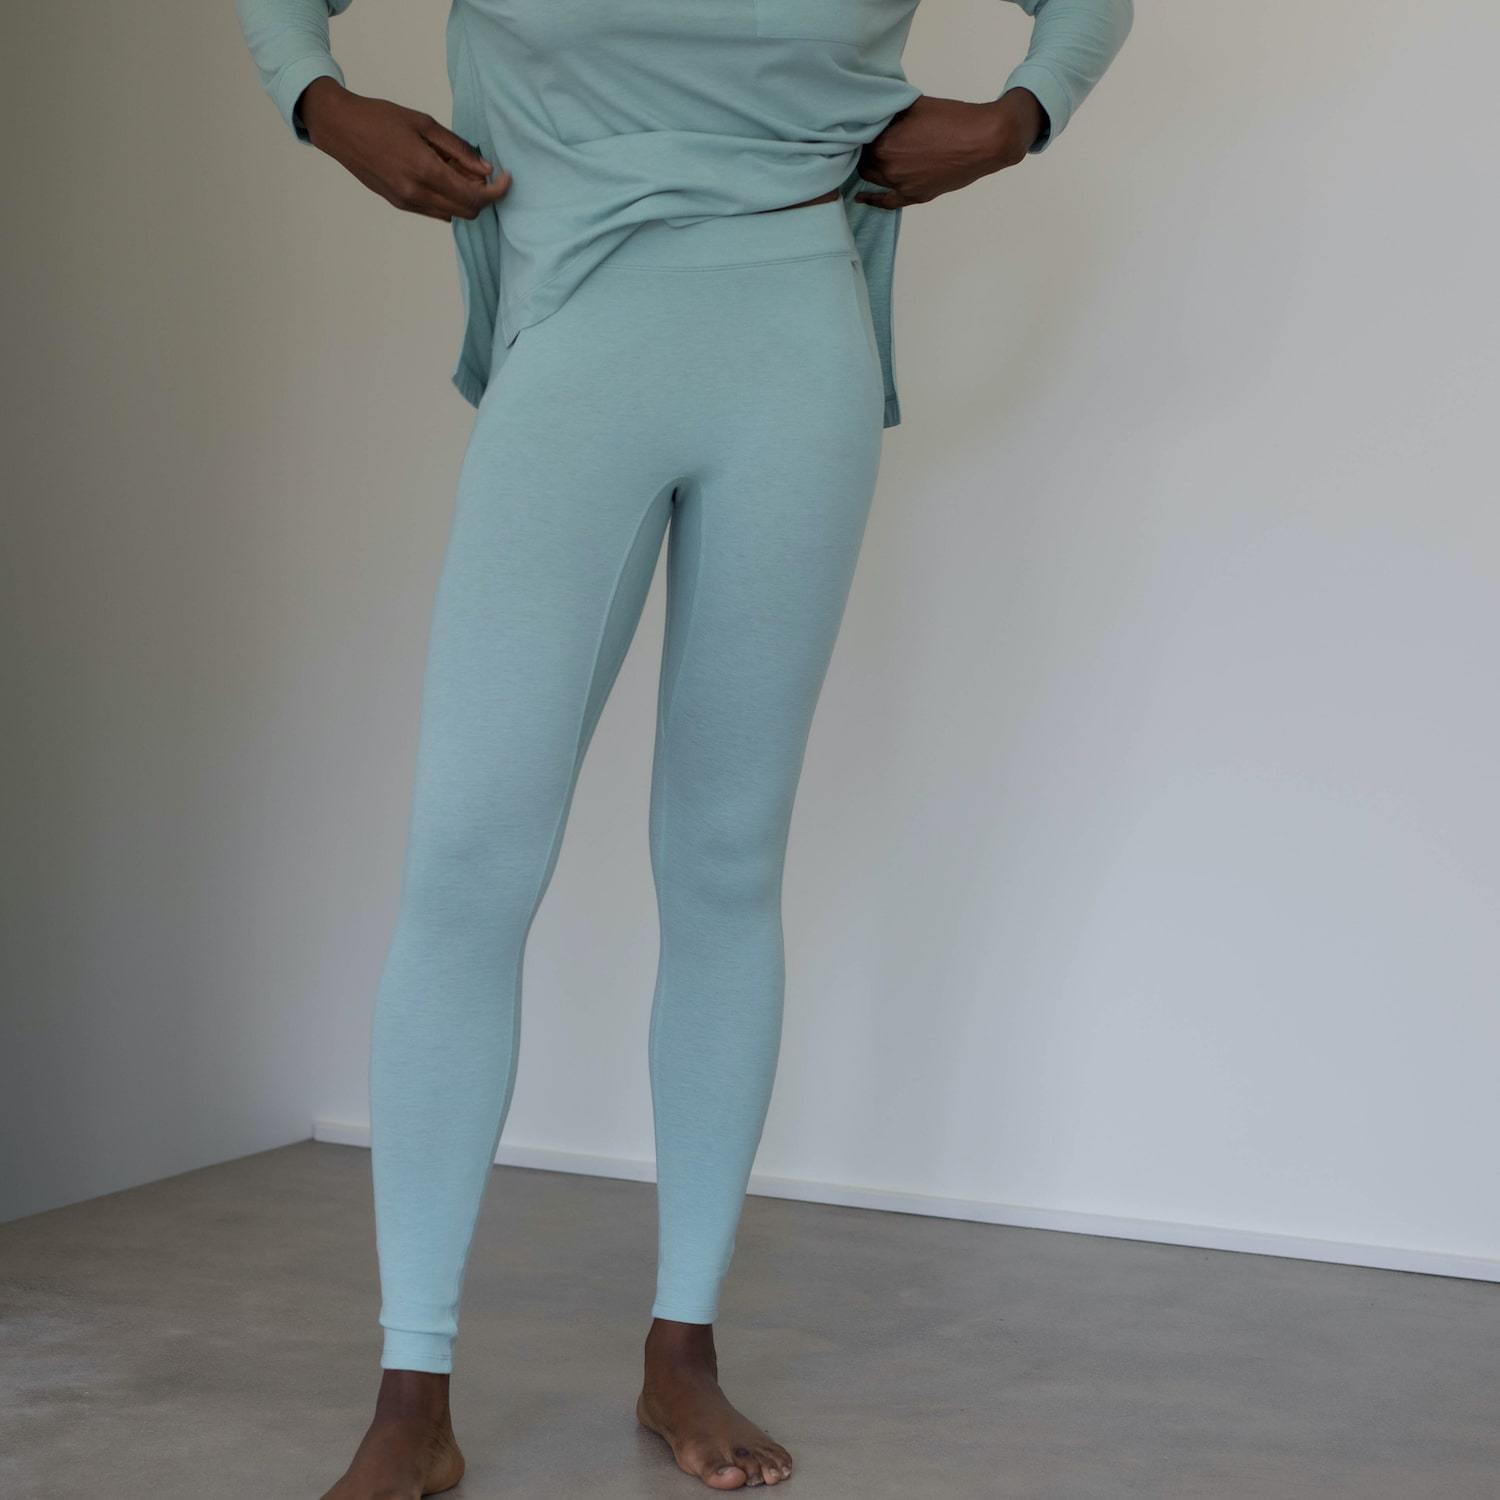 Lunya Sleepwear Restore Pima Pocket Legging - #Aloe